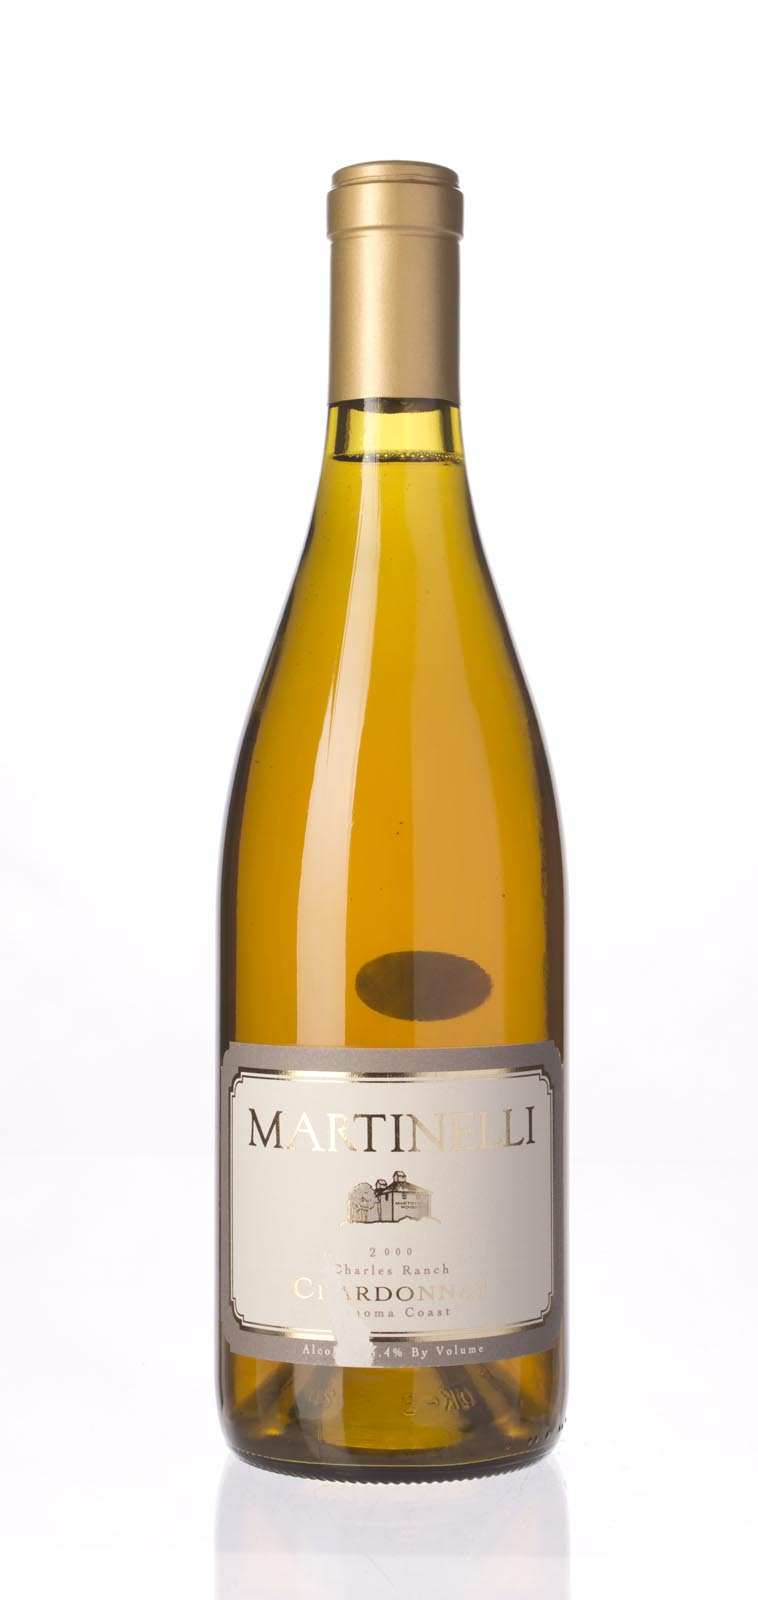 Martinelli Chardonnay Charles Ranch 2000, 750mL (ST90) from The BPW - Merchants of rare and fine wines.